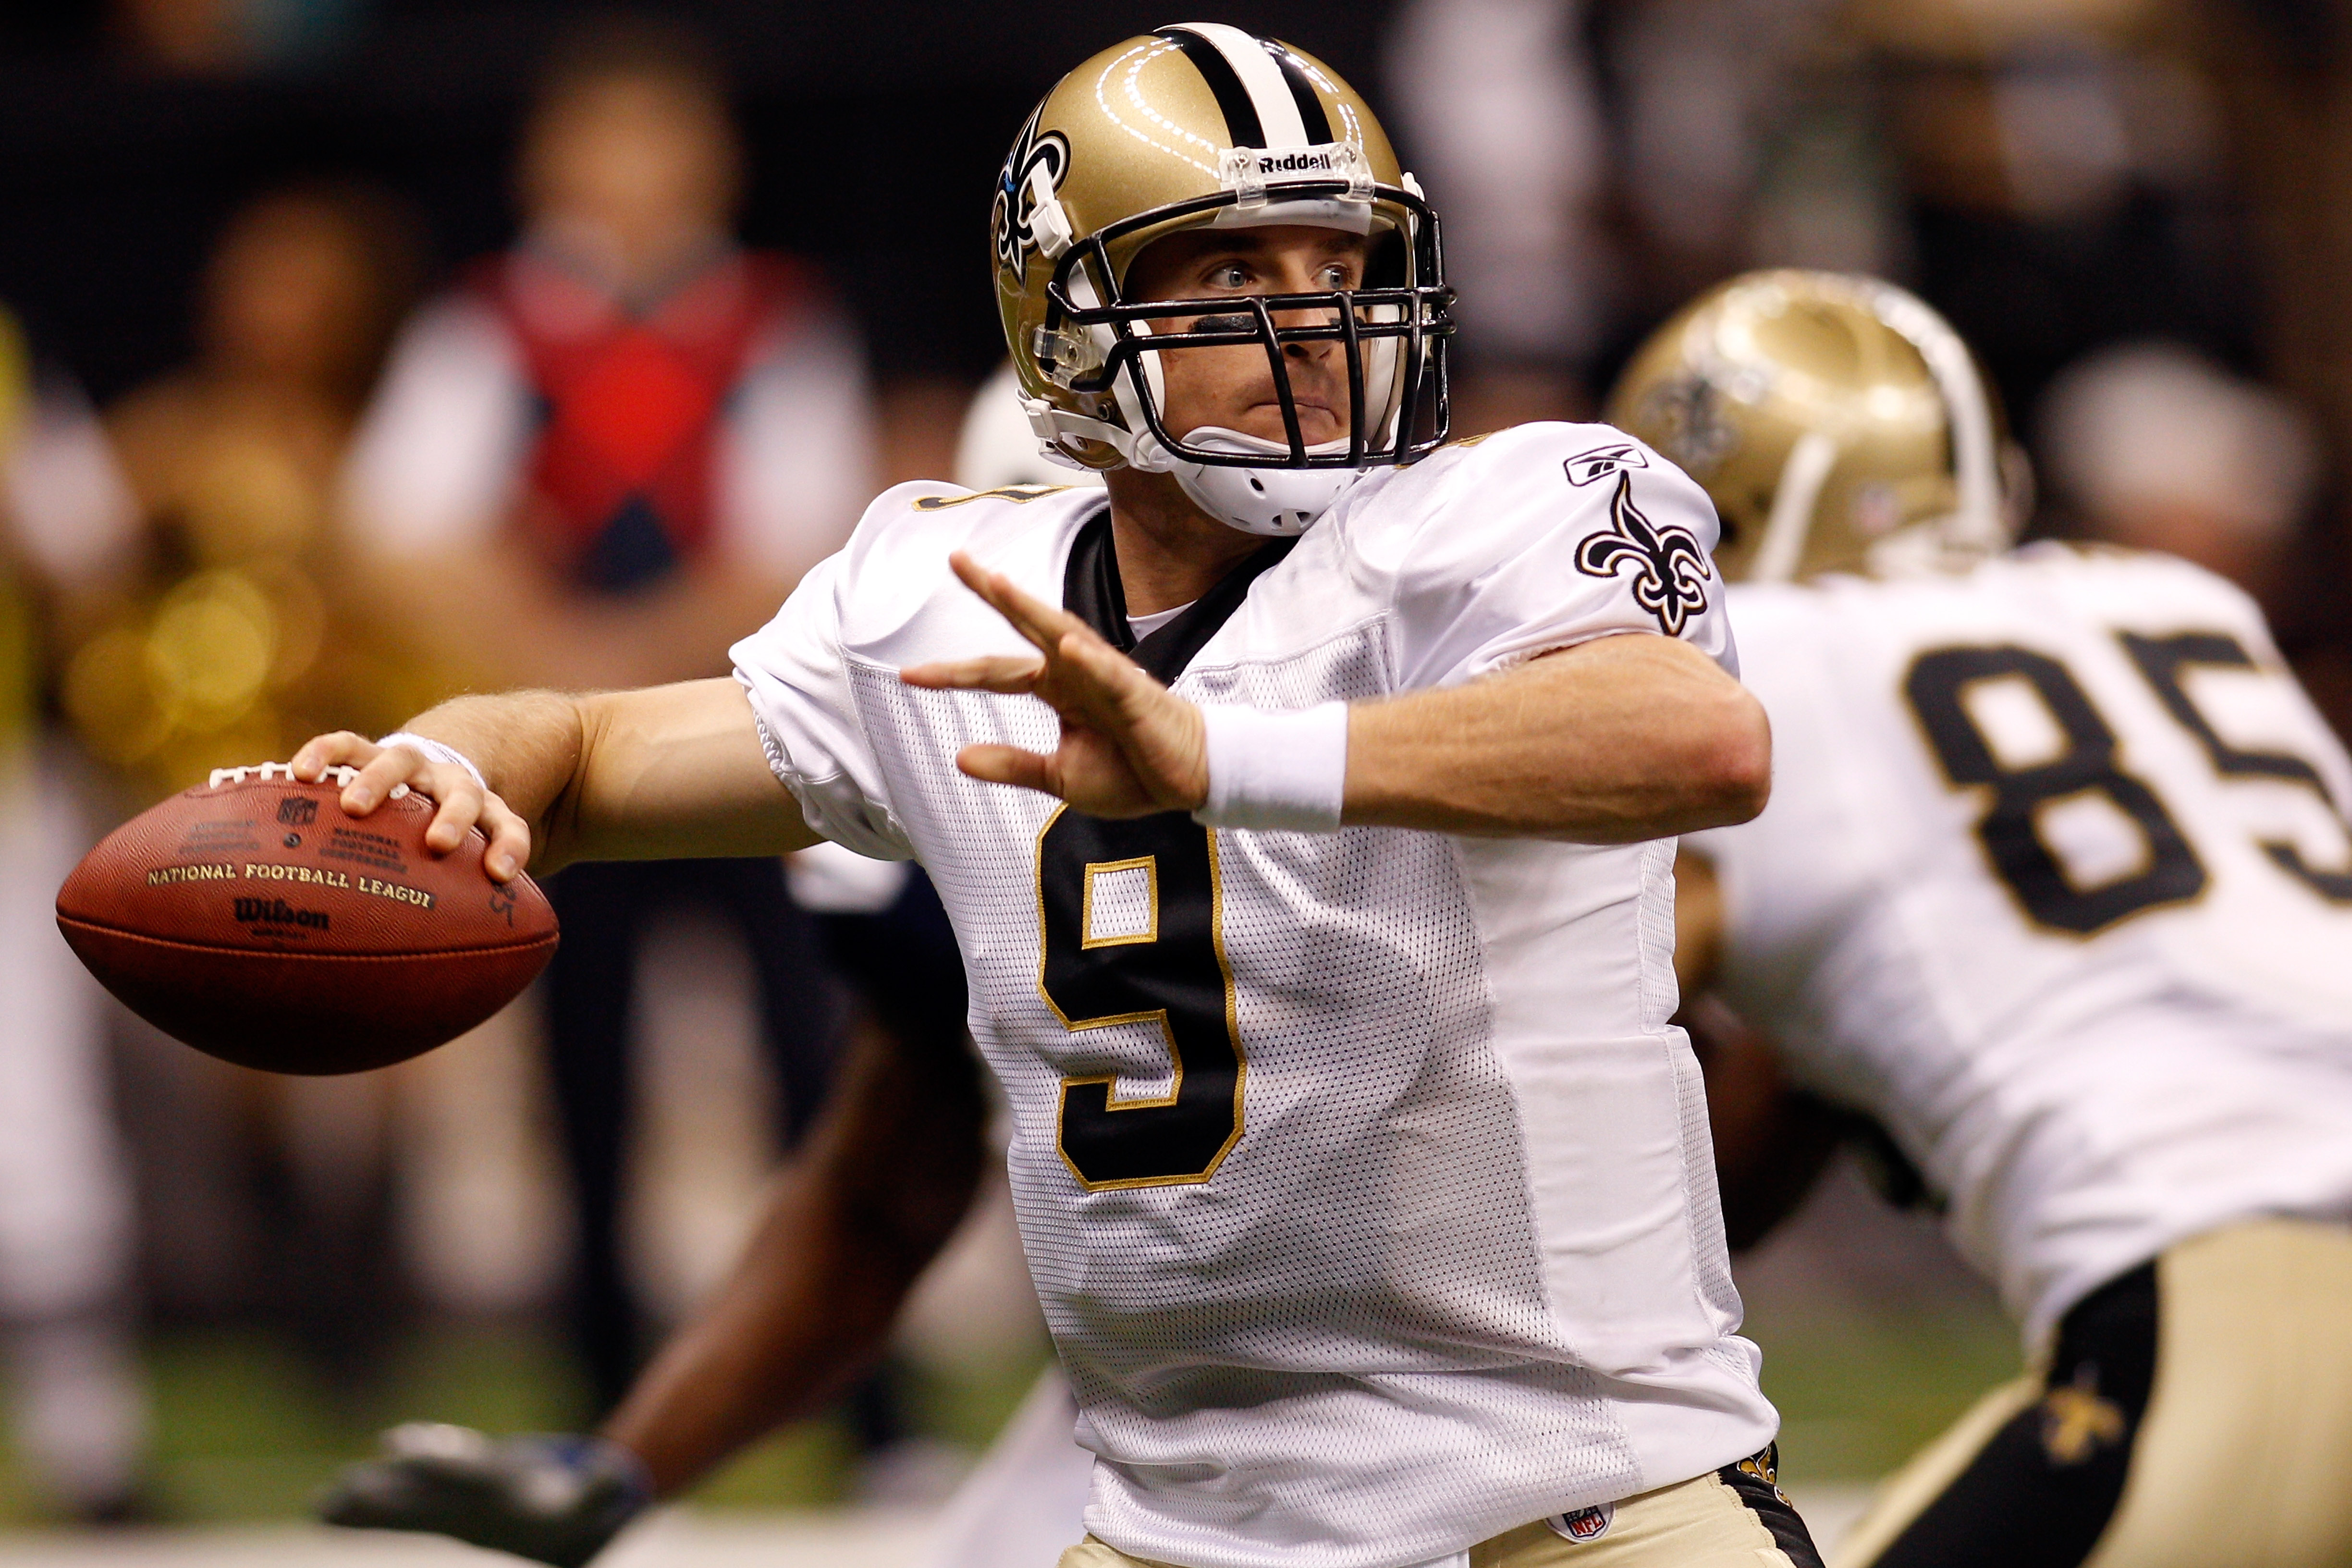 Madden Curse History: Is Drew Brees the Next To Fall